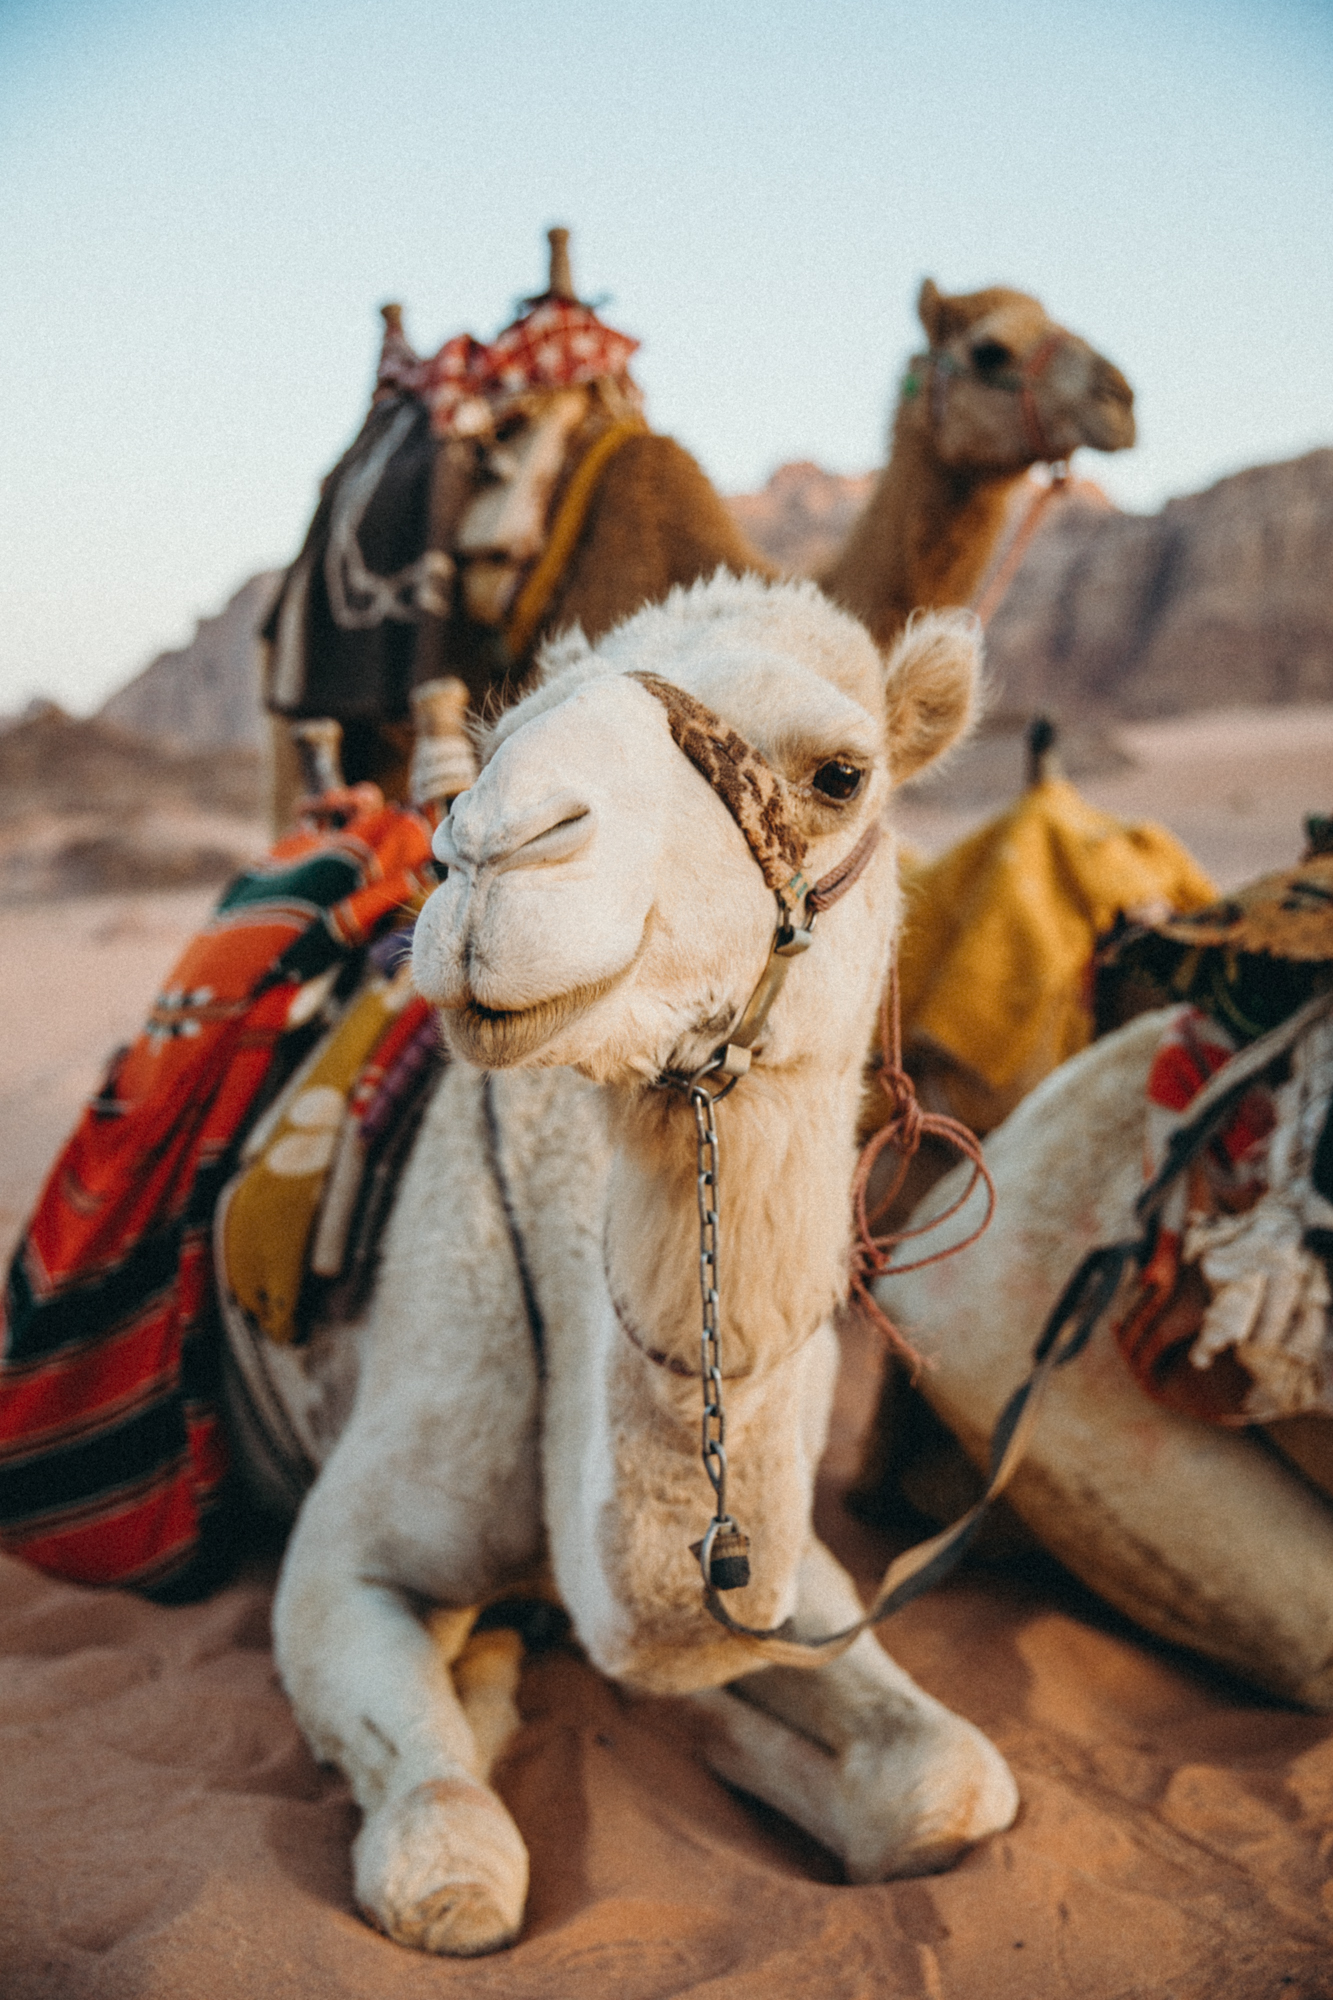 I love camels so much, so dopey and cute.